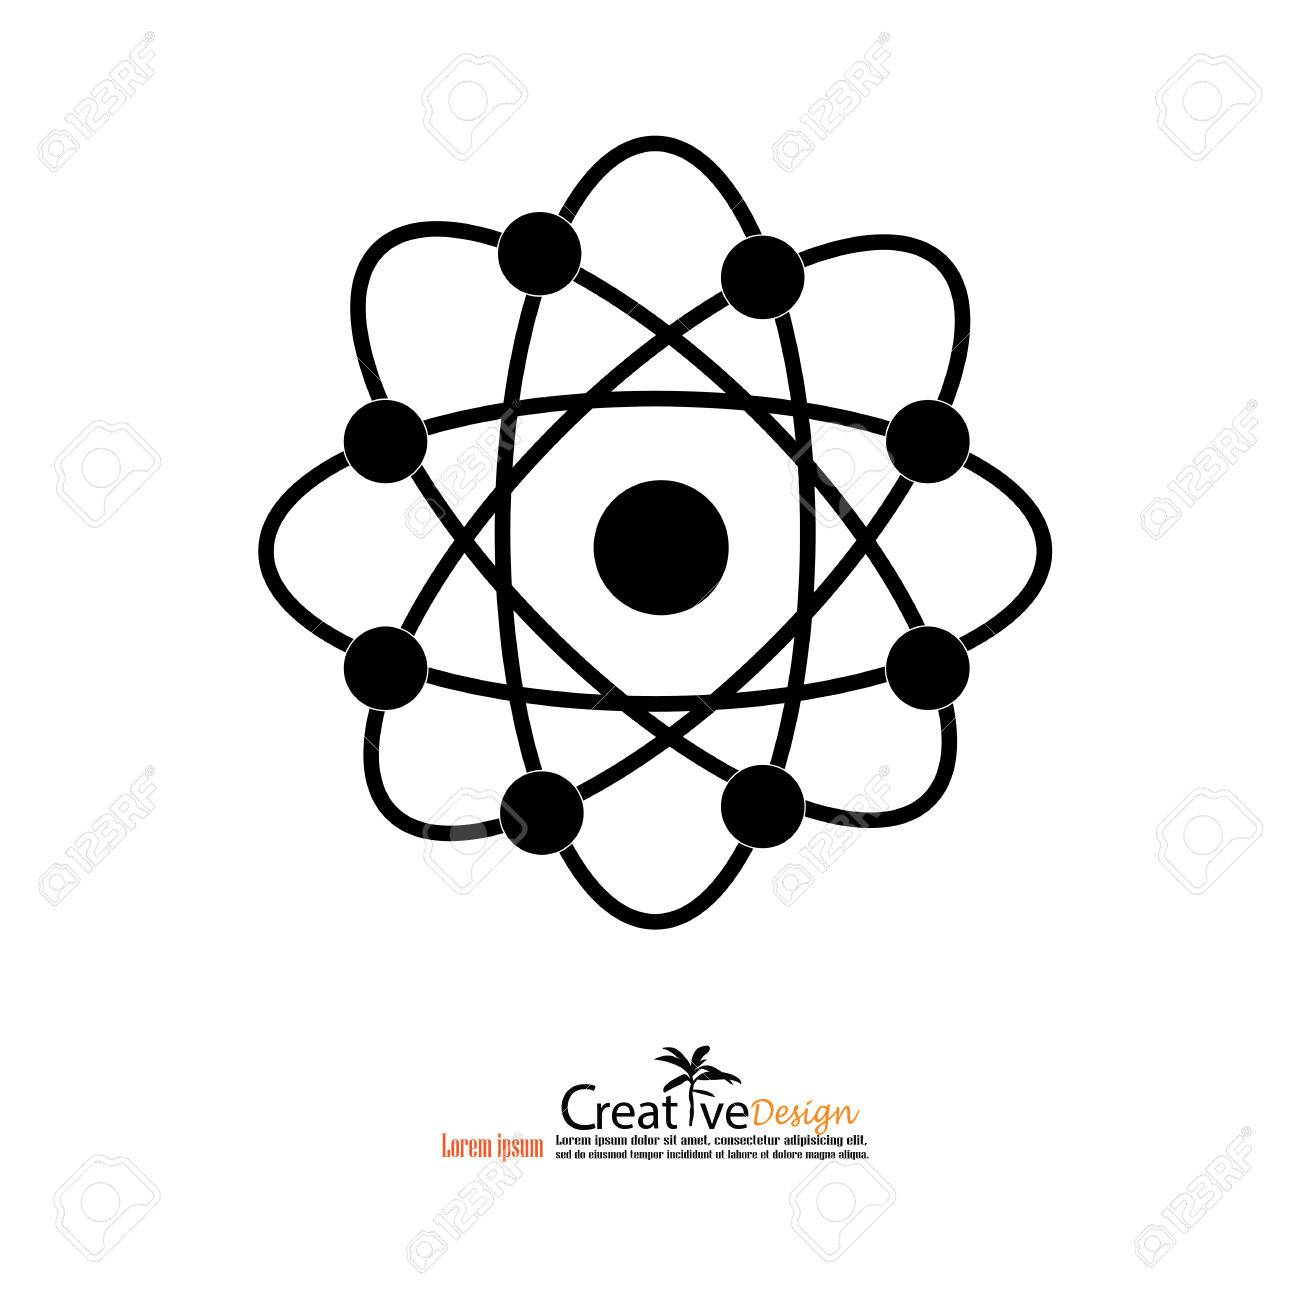 Atom structure vectorsymbol of atomatom atom illustration atom structure vectorsymbol of atomatom atom illustrationcovalent shell of ccuart Image collections